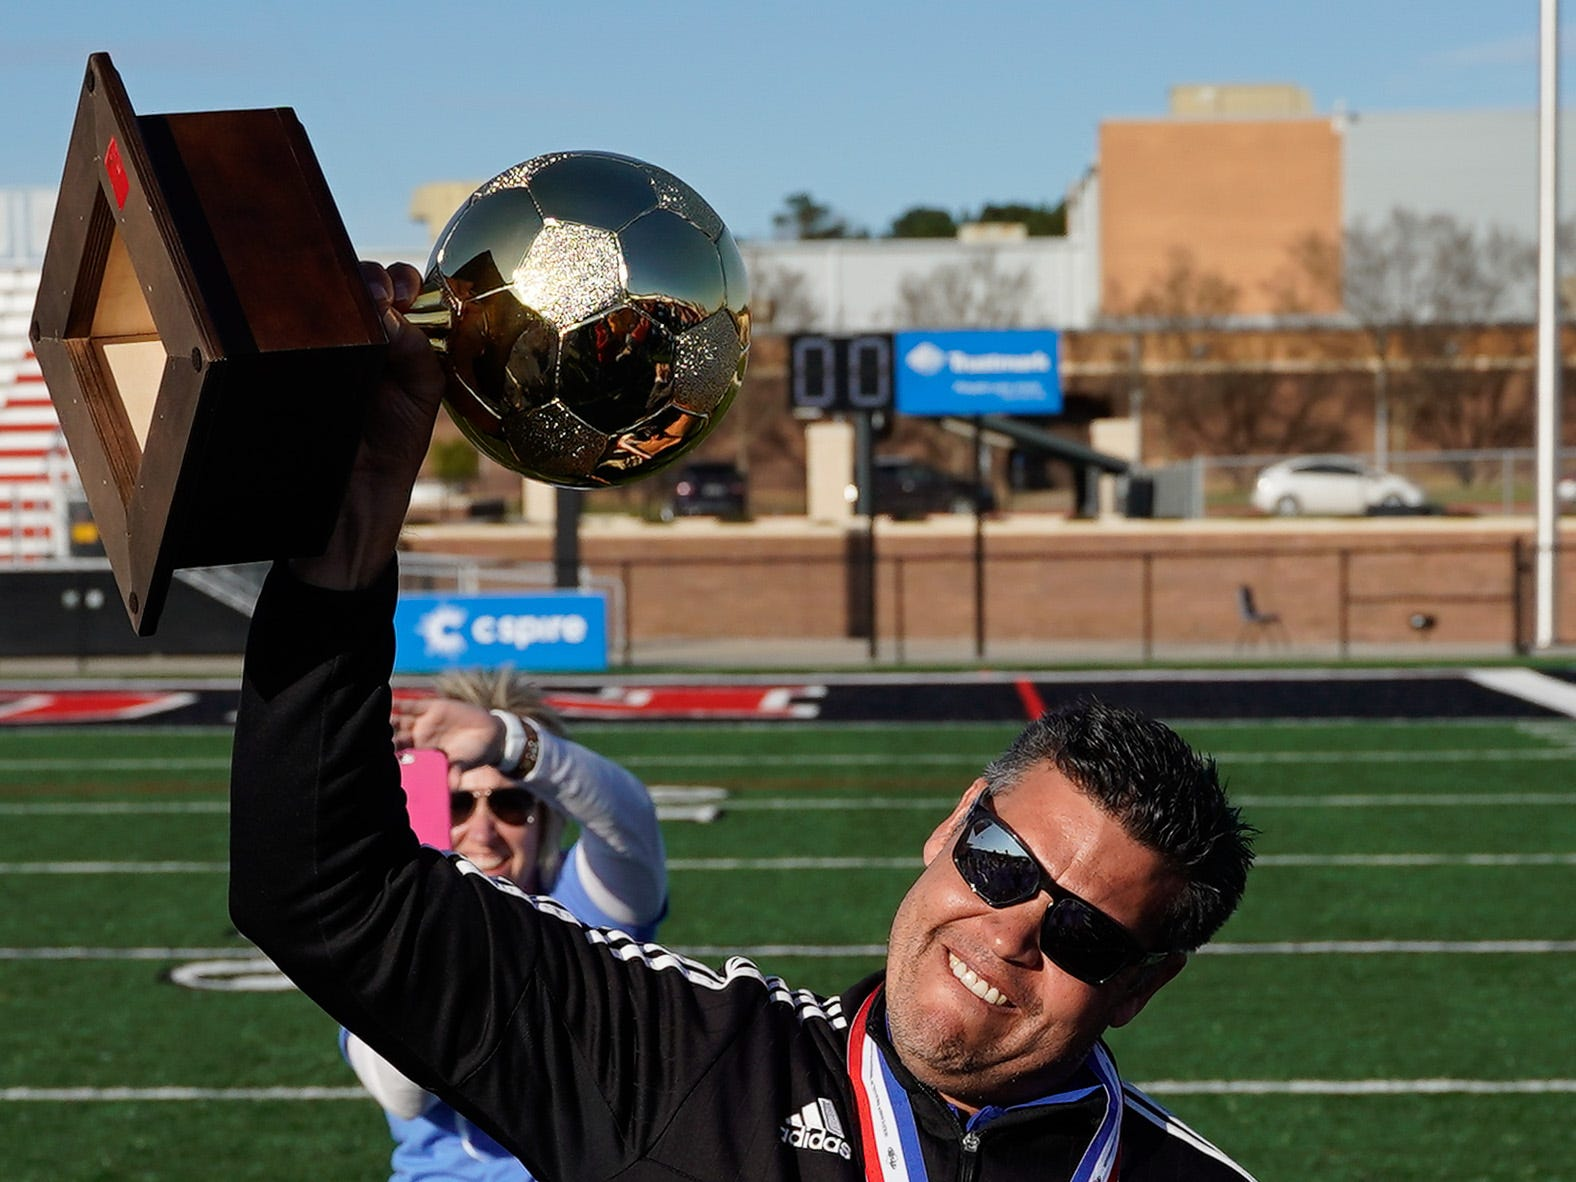 Sacred Heart boys soccer head coach Joe Falla Jr. hefts the Class 1A-2A-3A state championship trophy.